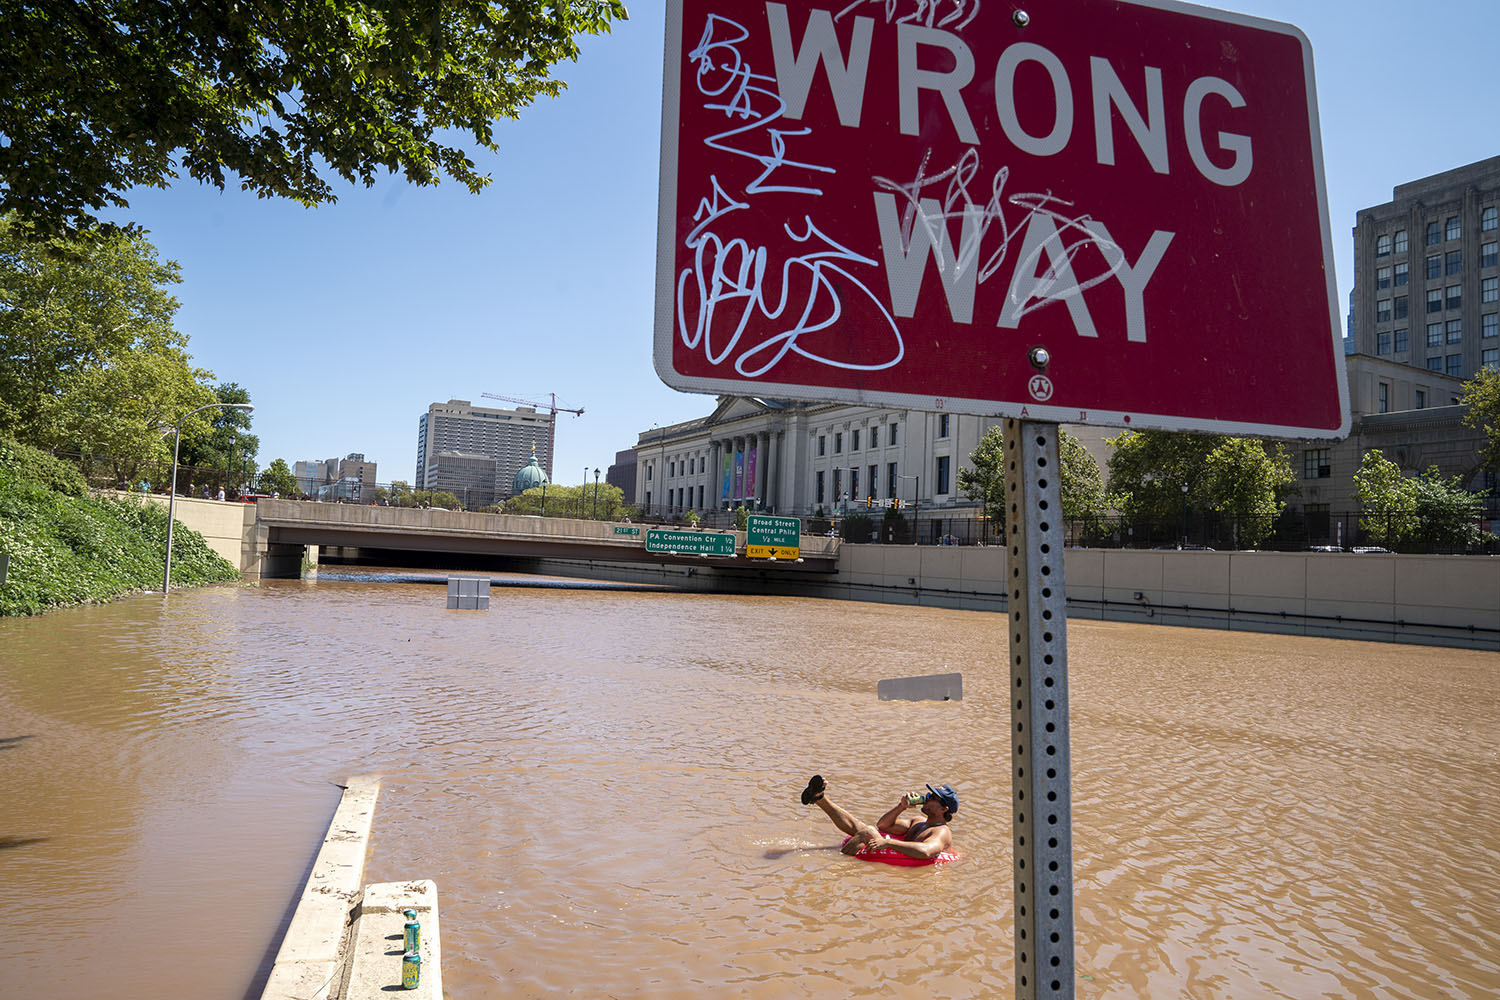 Austin Ferdock drinks a beer while floating in floodwater following a storm caused by the remnants of Hurricane Ida in Philadelphia on Sept. 2. Jessica Kourkounis/Getty Images